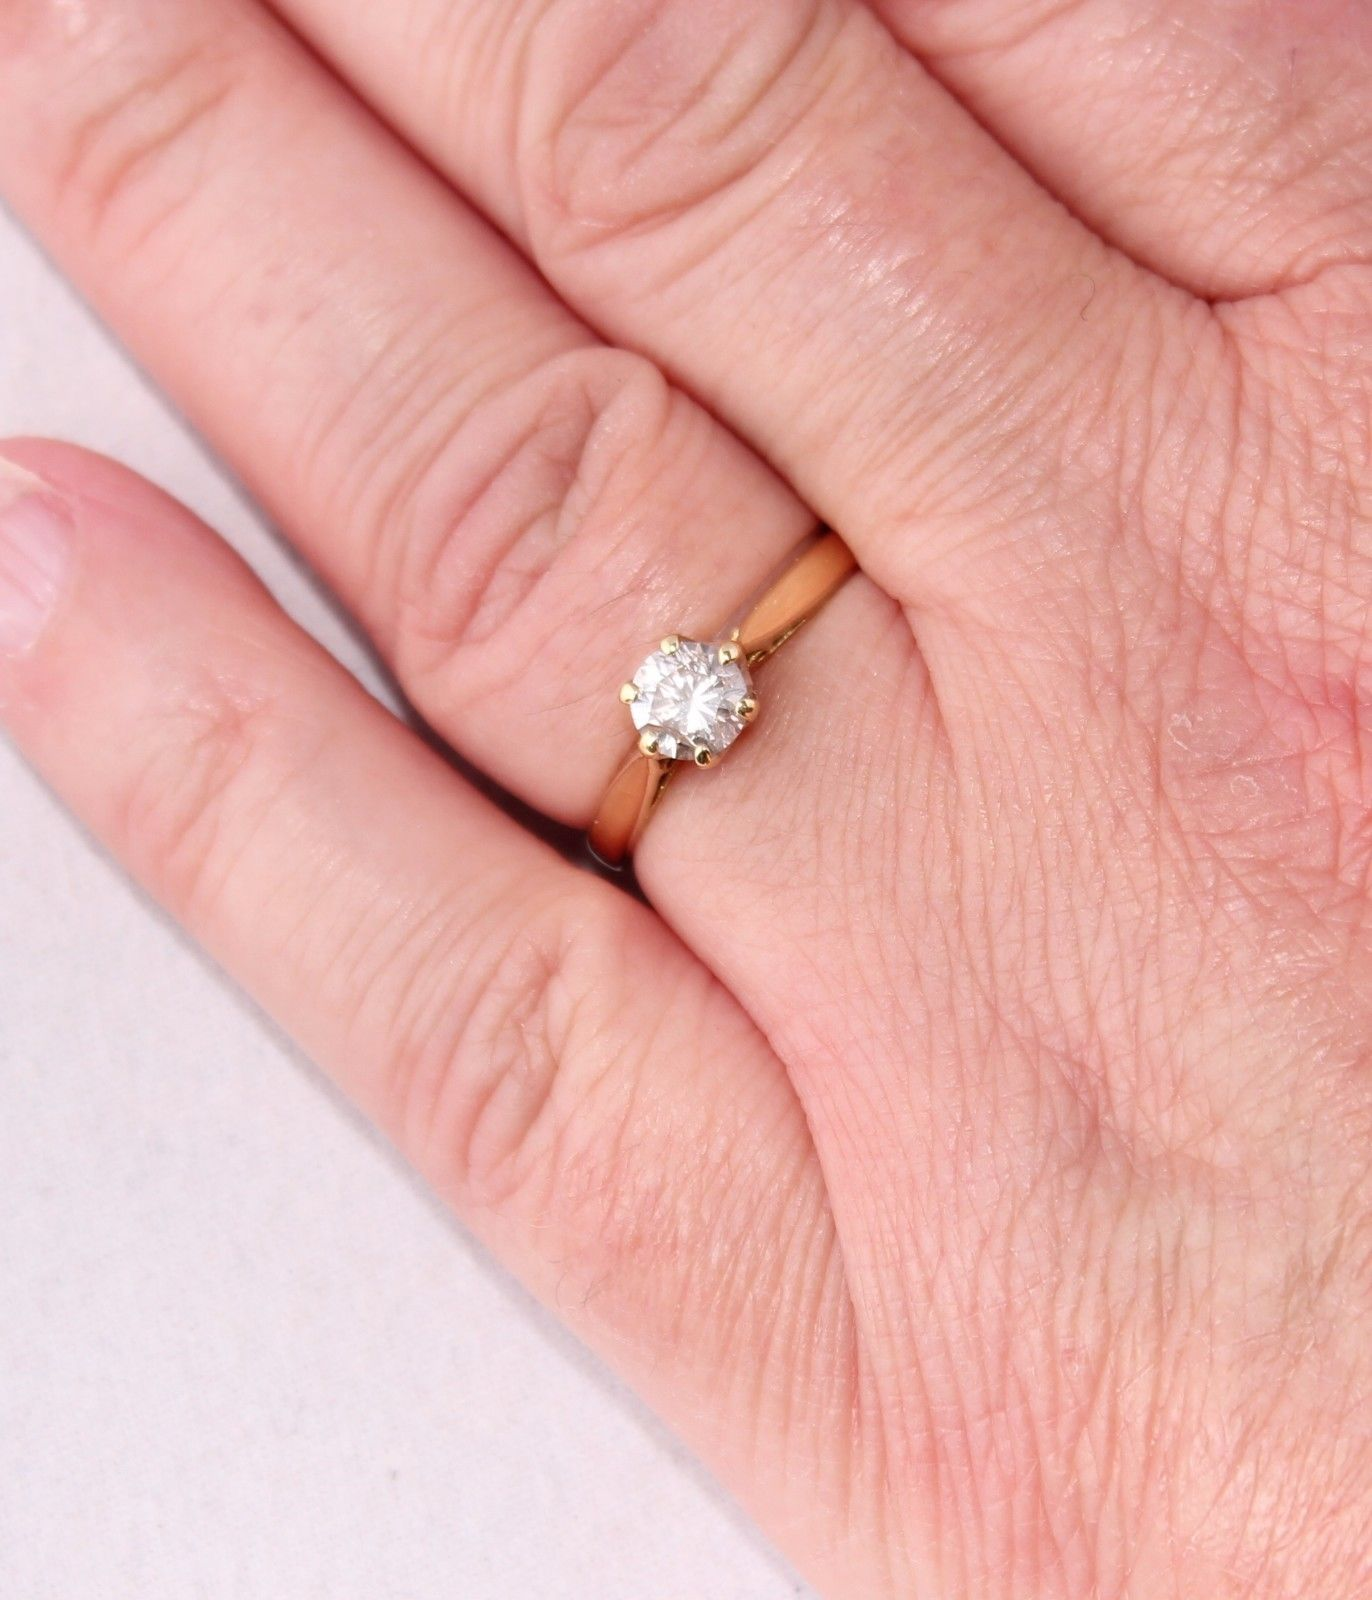 18ct Yellow Gold & Diamond 0.50ct Solitaire Engagement Ring. Size J 1/2.